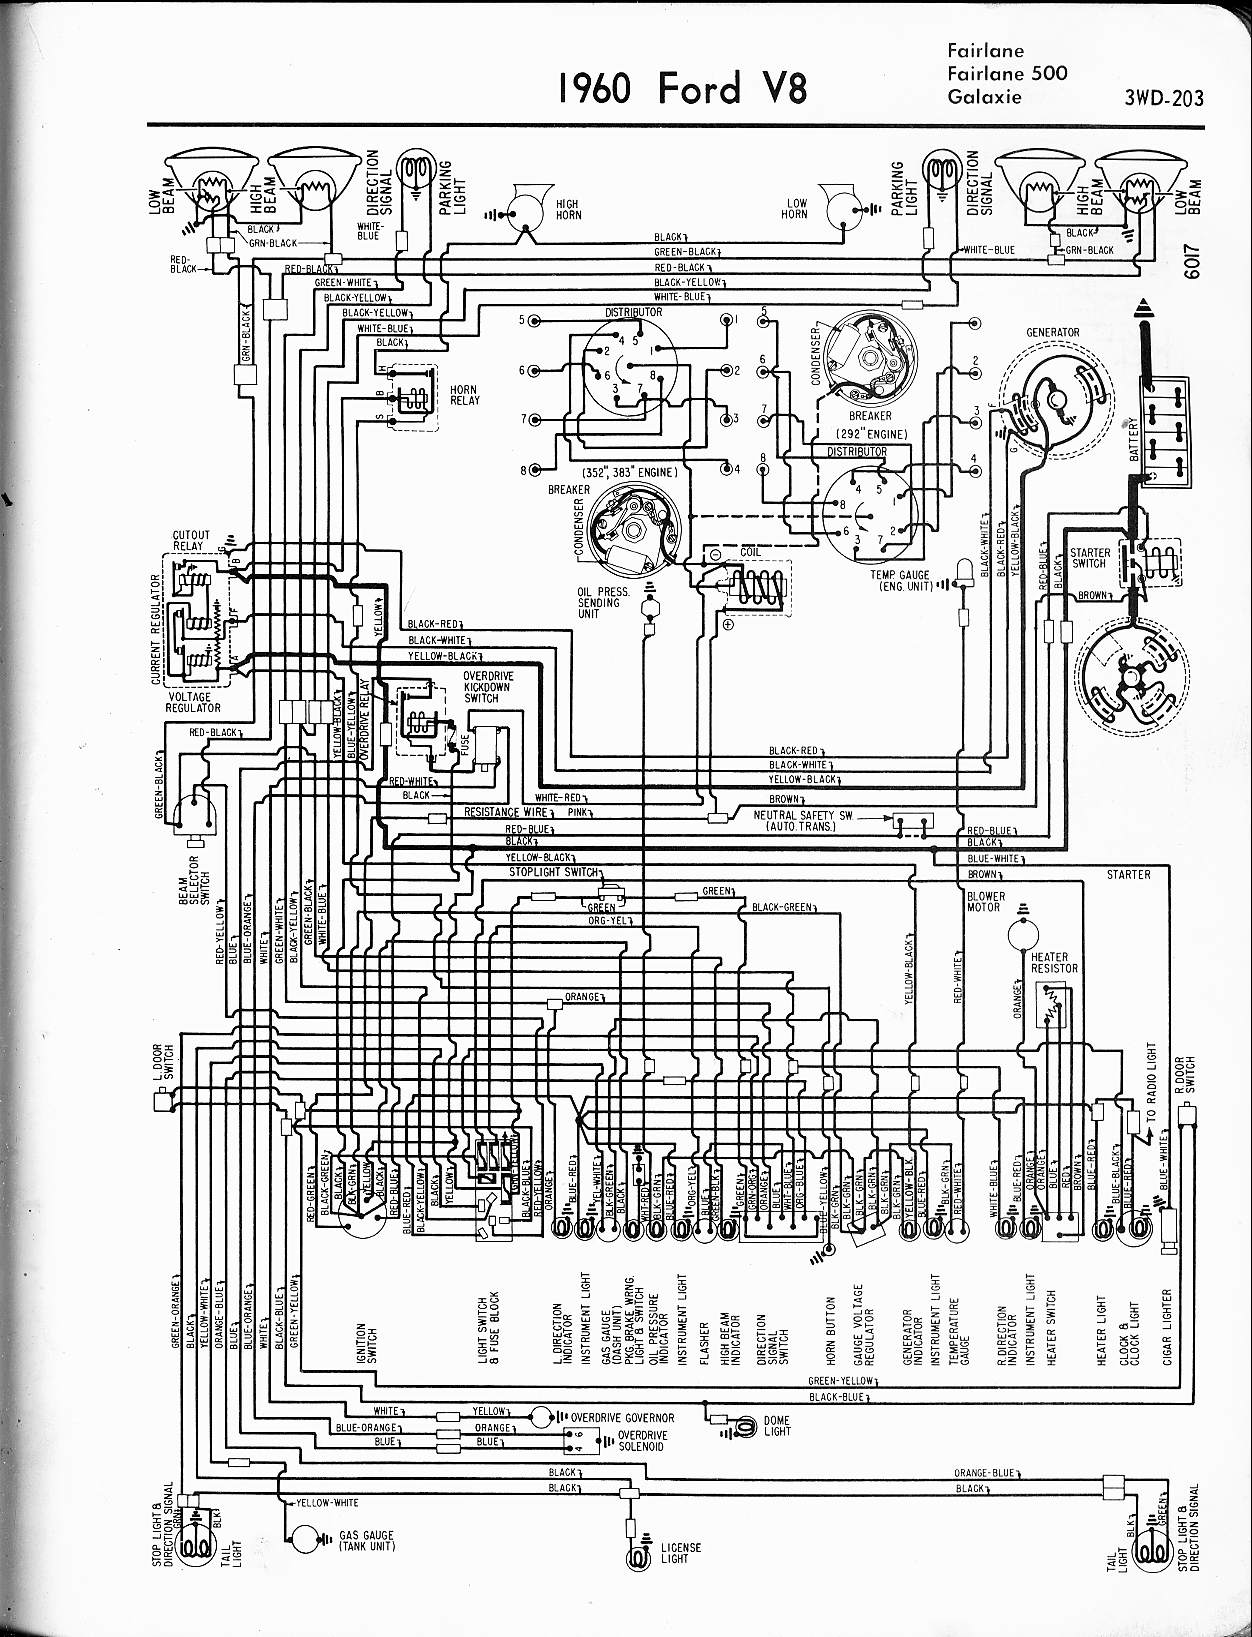 57 65 ford wiring diagrams 1973 ford f100 turn signal wiring diagram 2003 mustang steering column wiring diagram